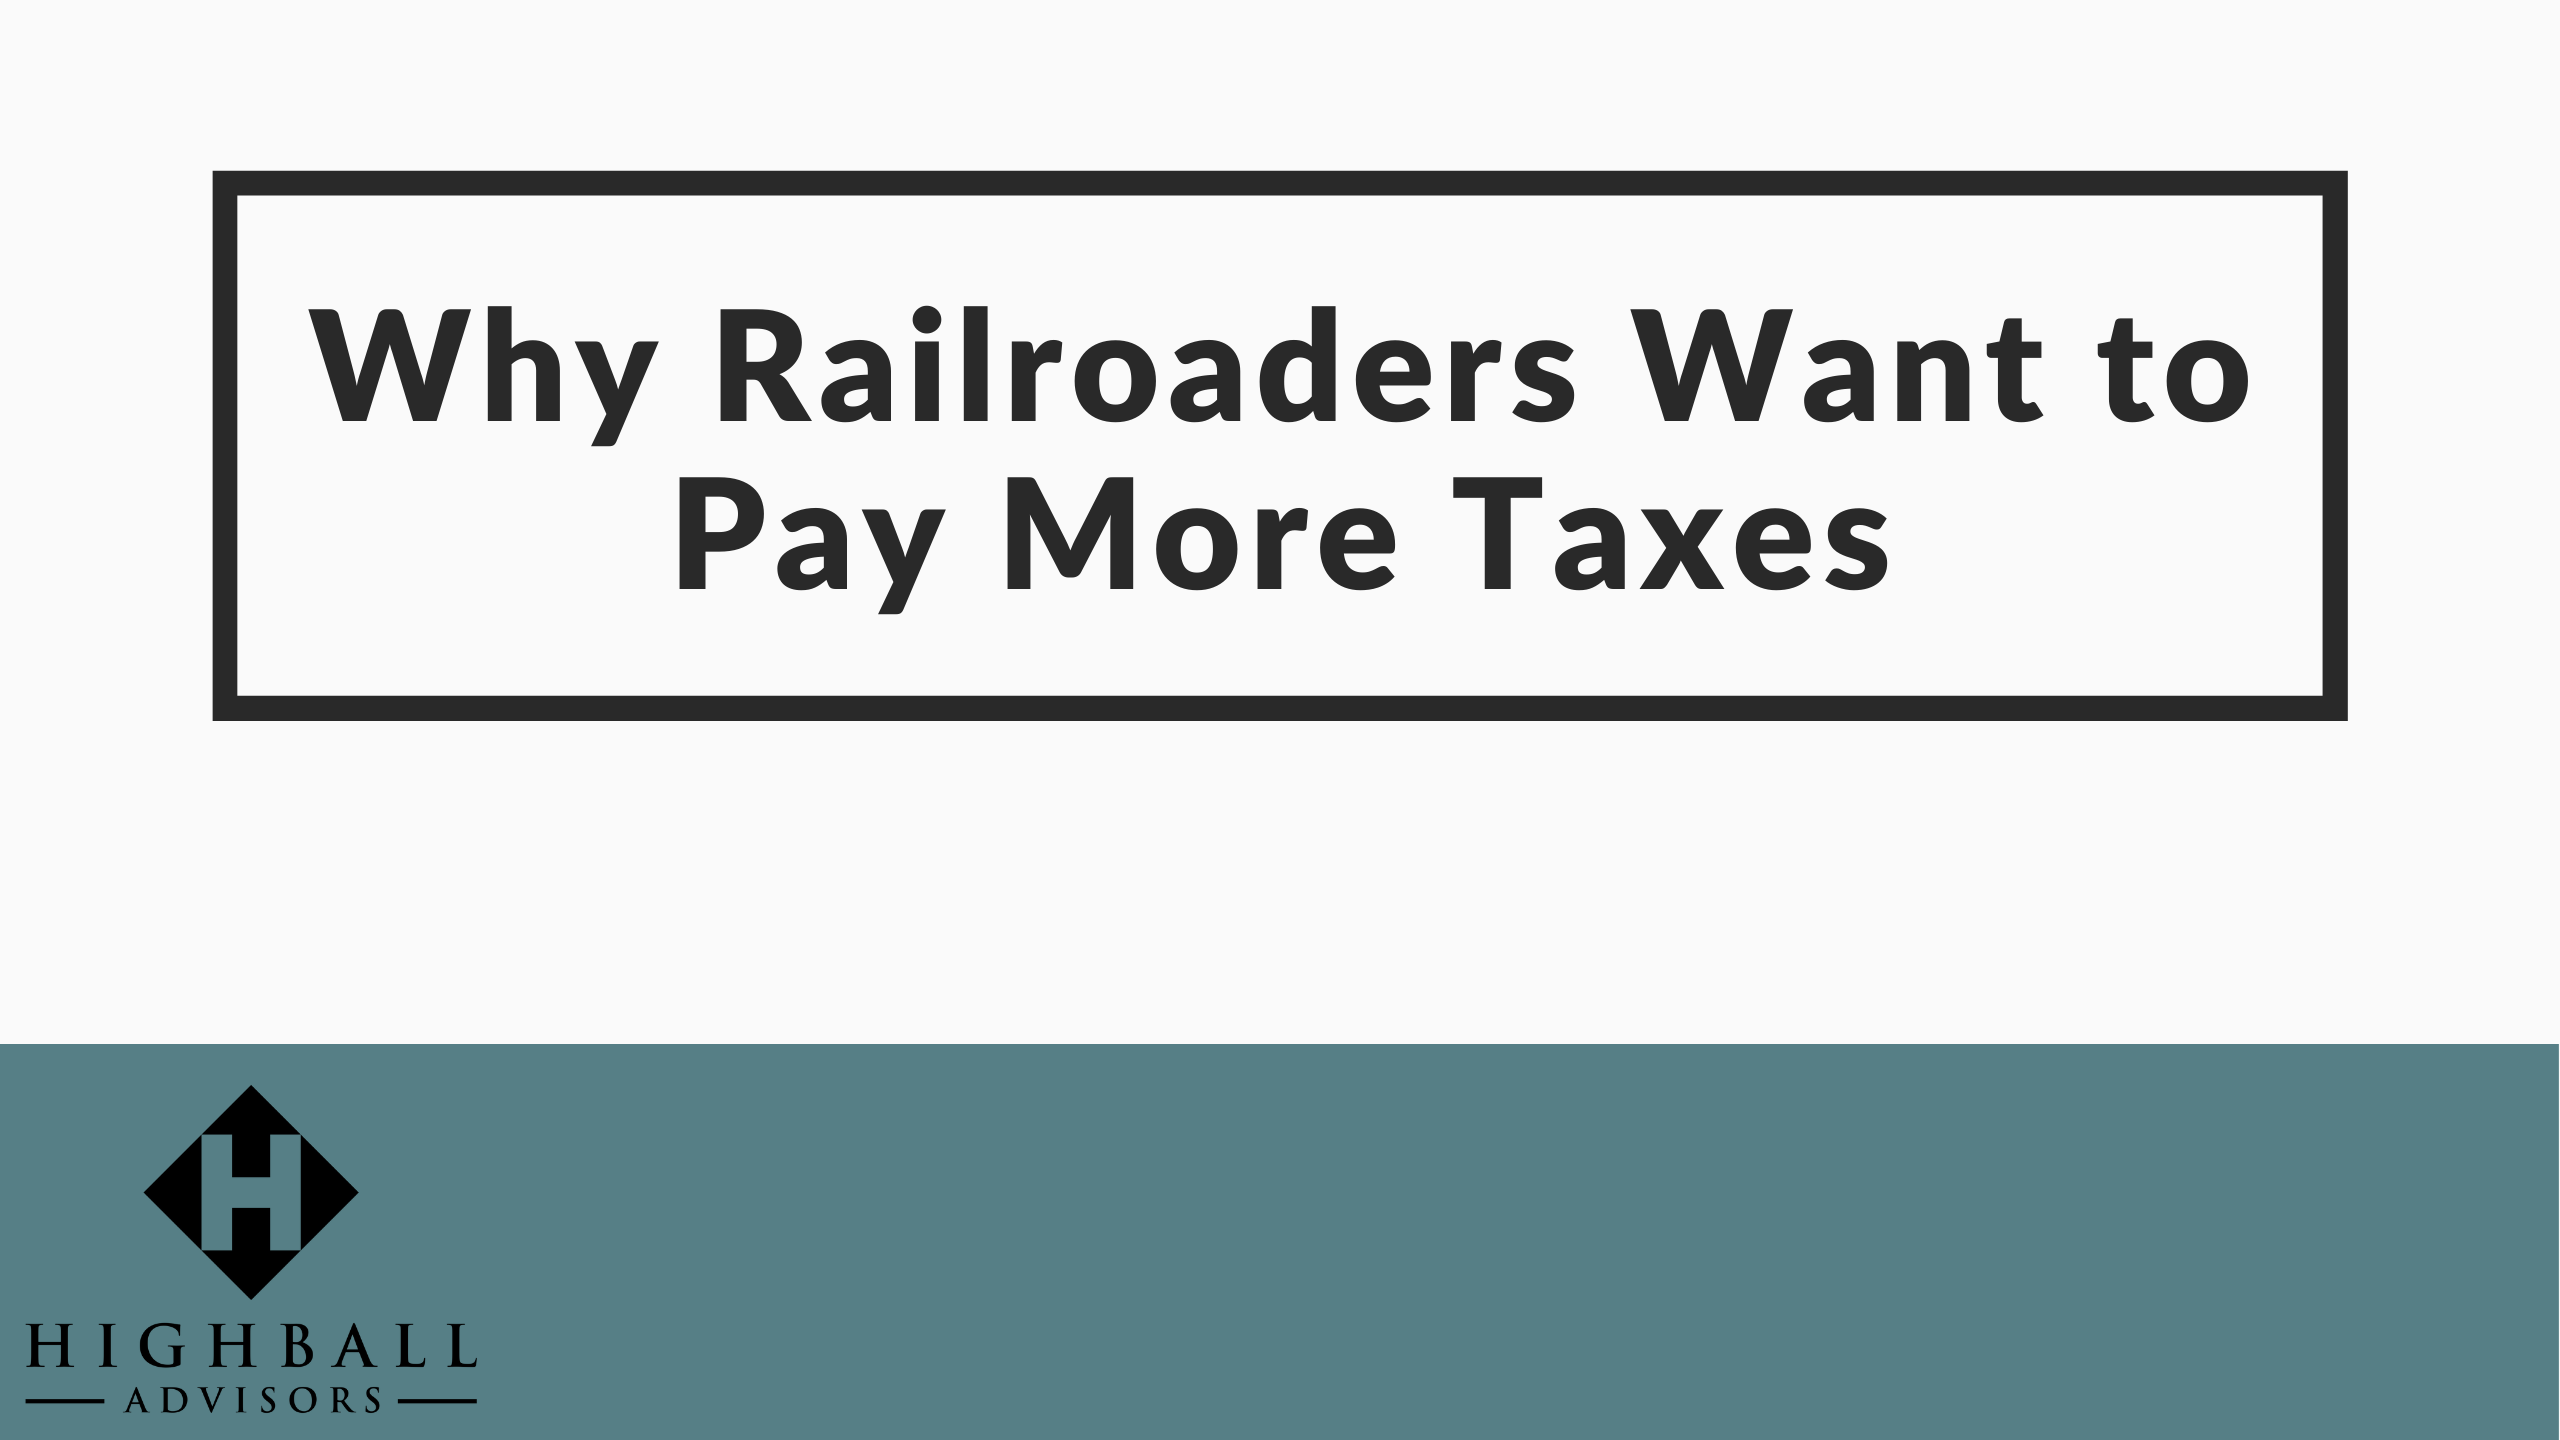 VIDEO: Why Railroaders Want to Pay More Taxes Thumbnail